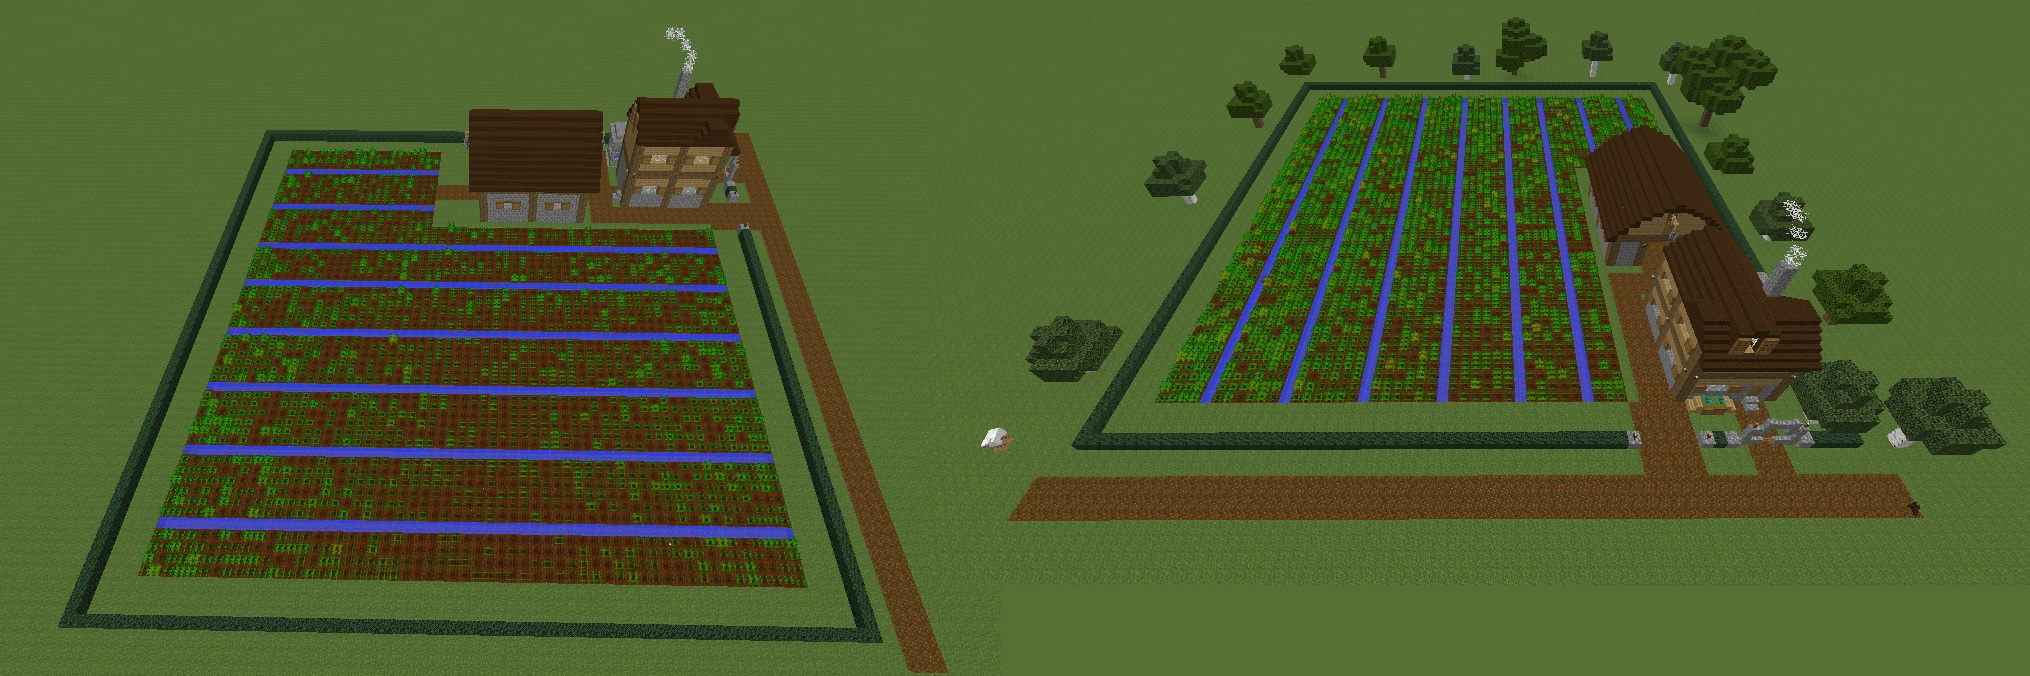 Early European 64x64 Minecraft Farm Idea By ColtCoyote On DeviantArt